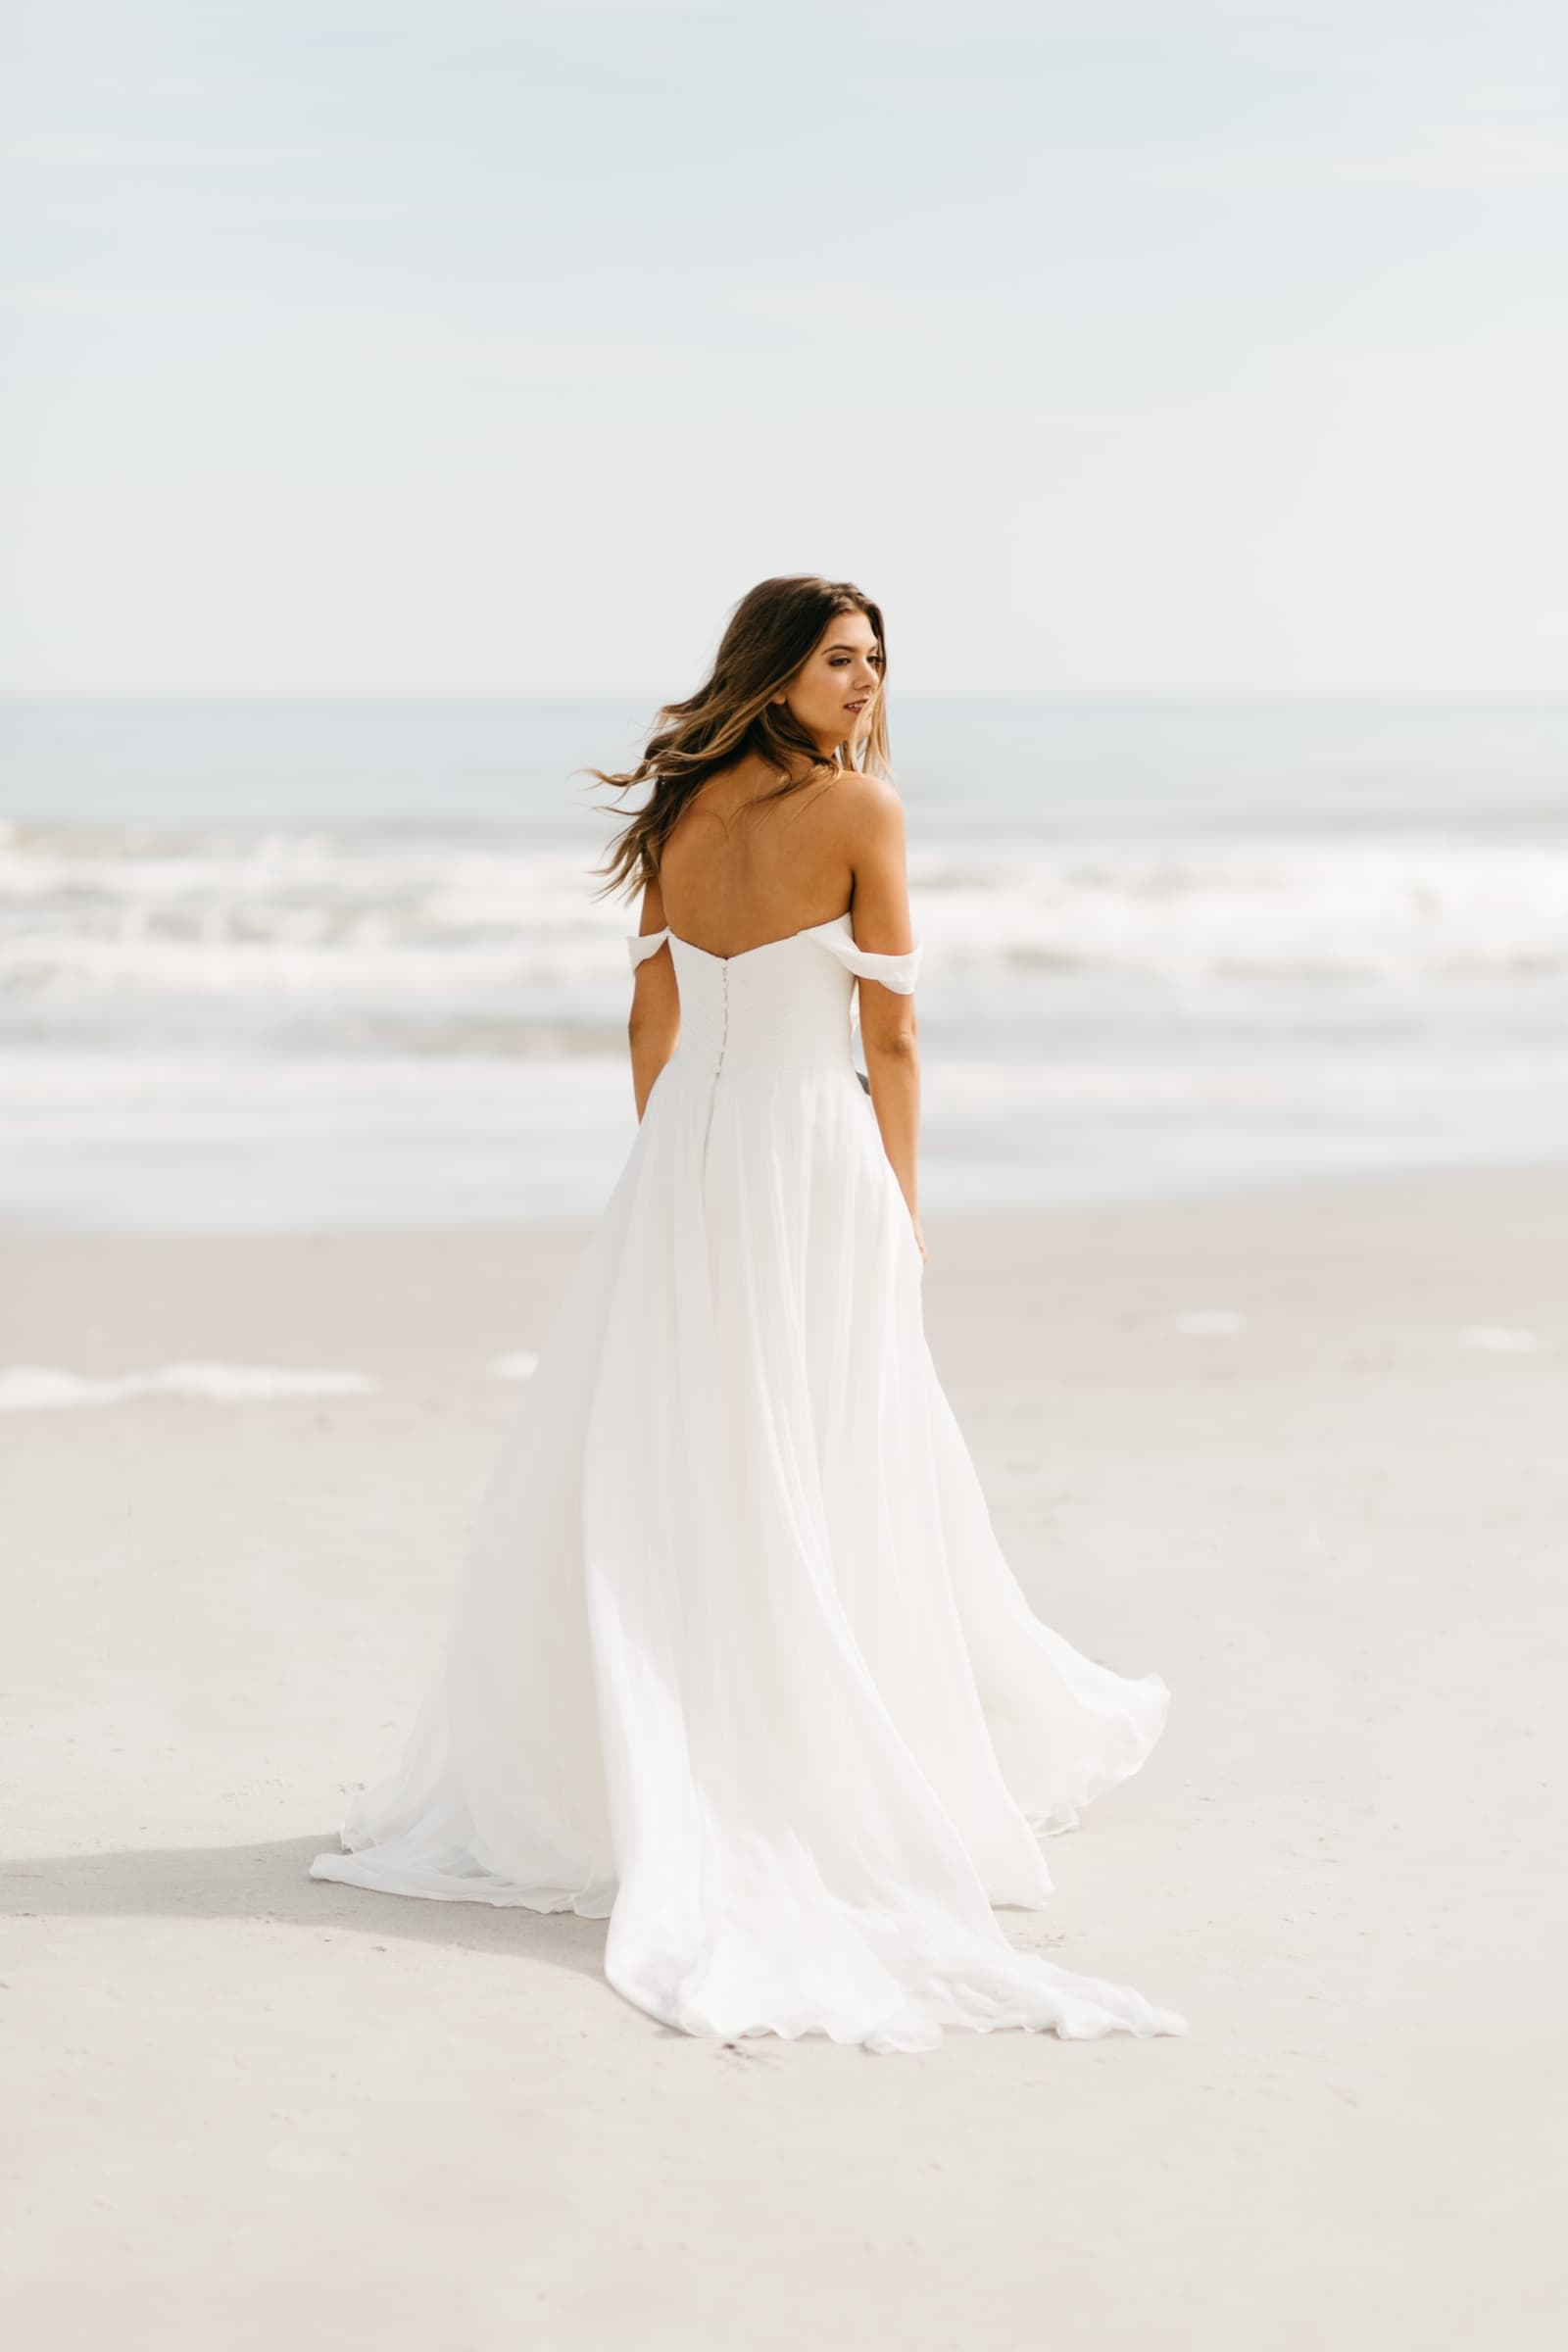 jacksonville bride beach wedding dress